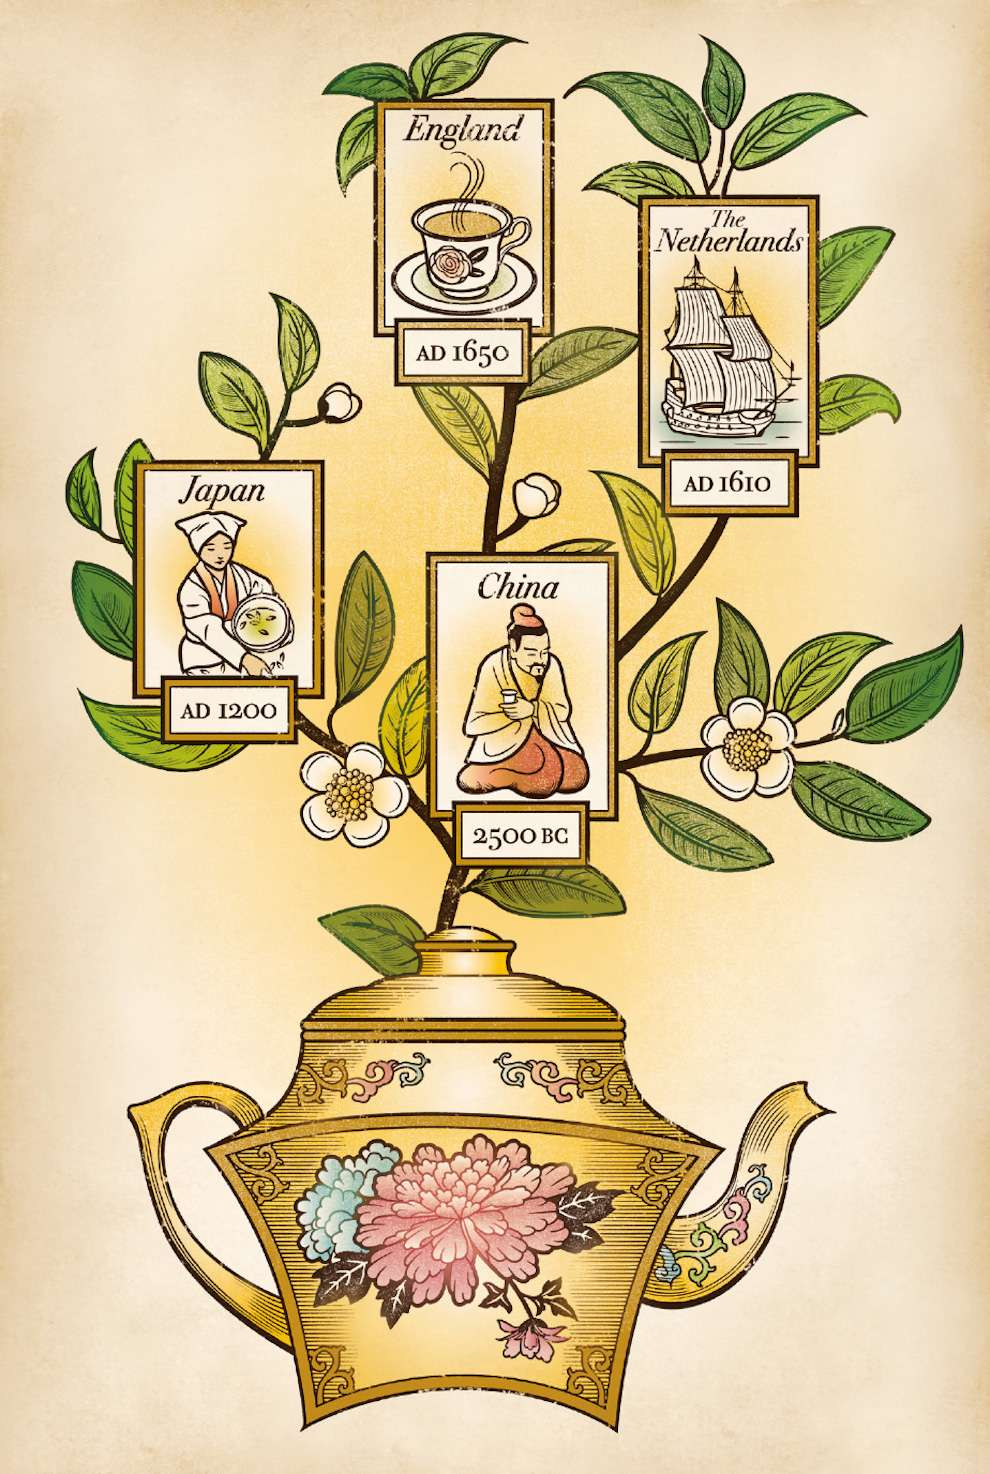 Susan Burghart, Vintage digital illustration of a tea pot